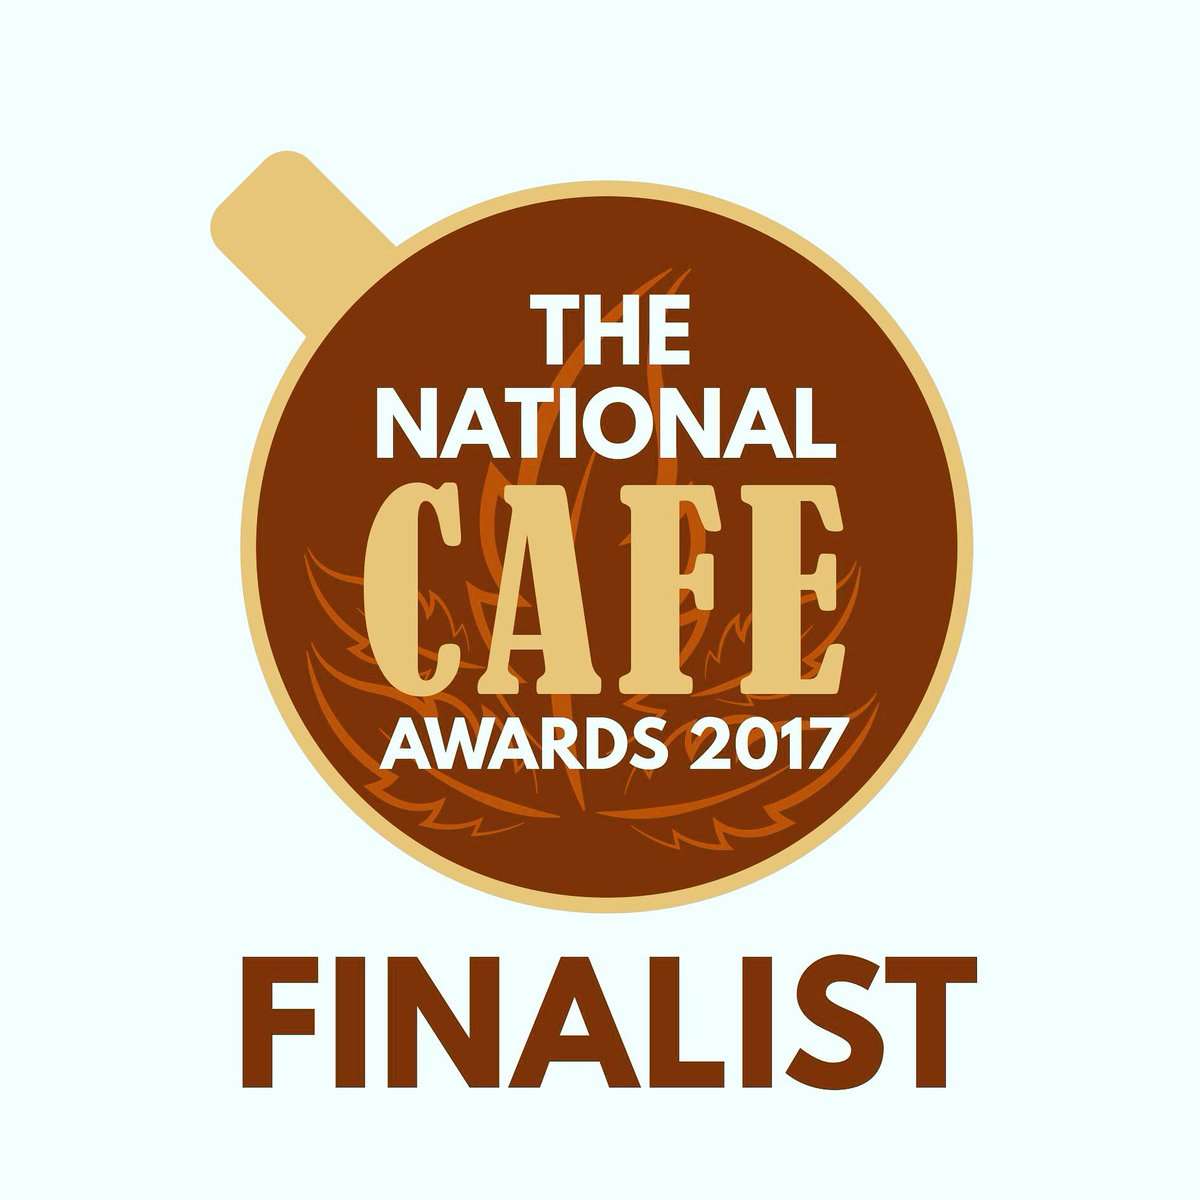 We&#39;ve only gone &amp; made it to the finals of the #NationalCafeAwards #finalist #awards #teamwork #community #support #proud<br>http://pic.twitter.com/AGJmgH0ssU